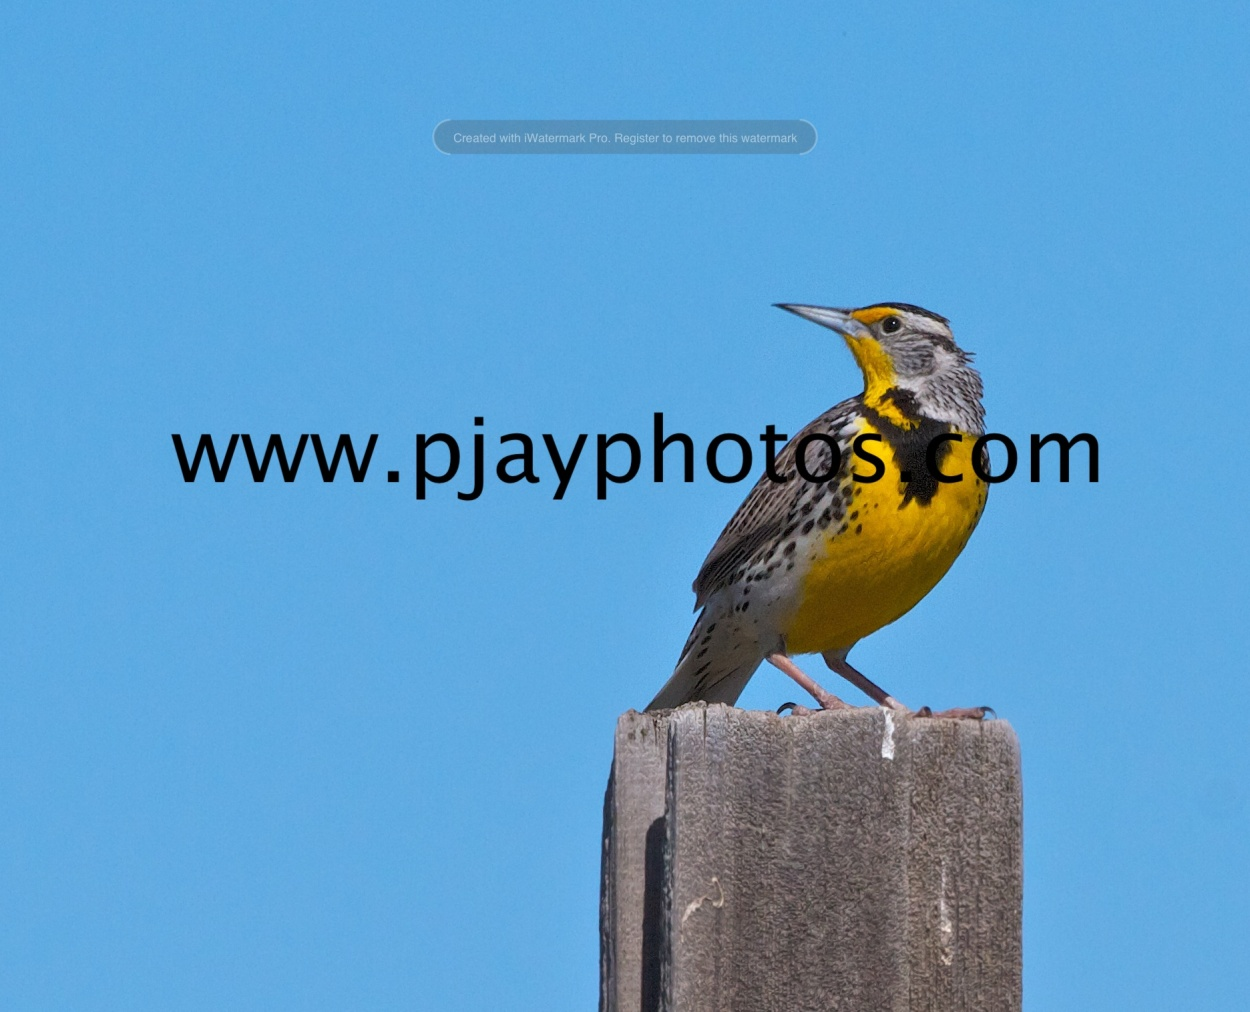 western meadowlark, meadowlark, bird, use, washington, nature, wildlife, photograph